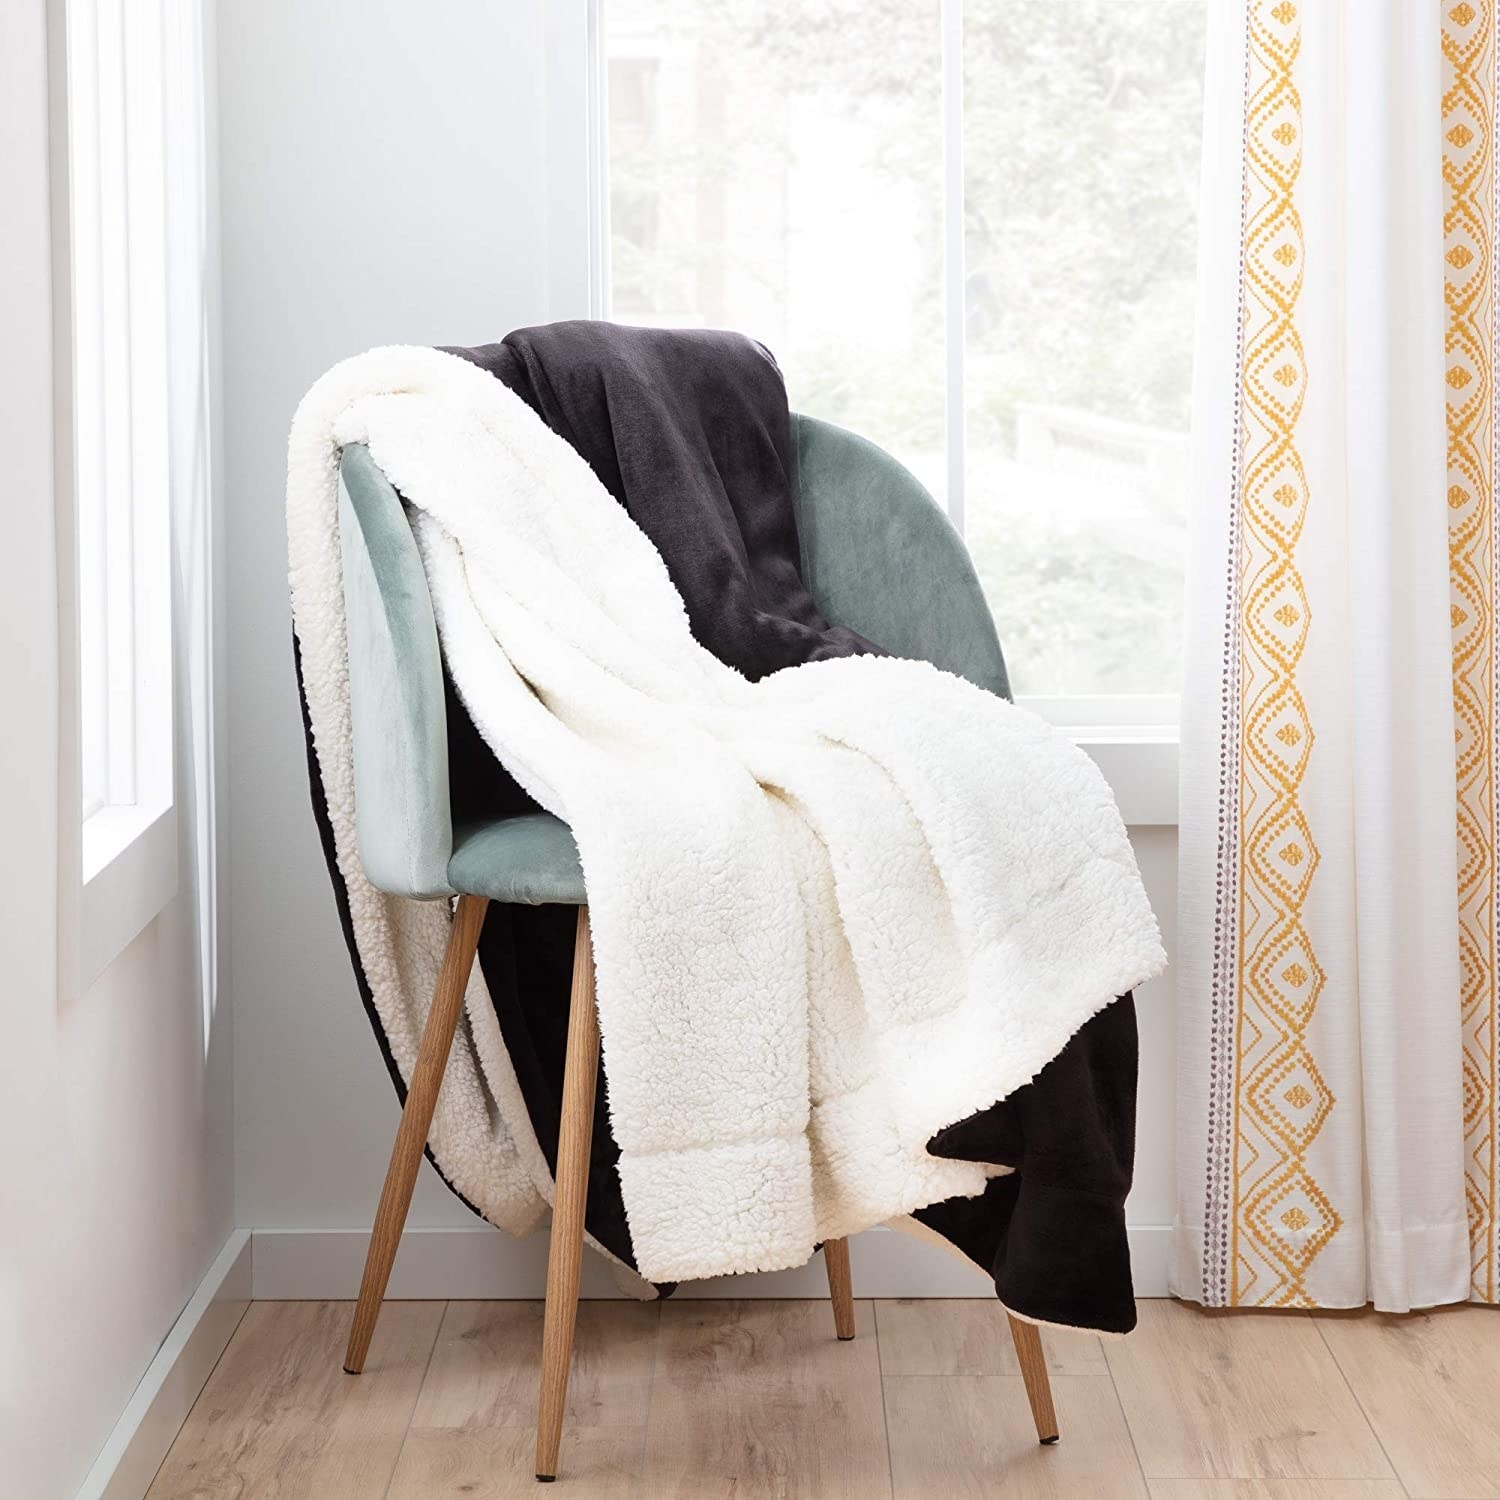 The blanket, which has a dark gray fleece side and a white sherpa side, lying on a chair